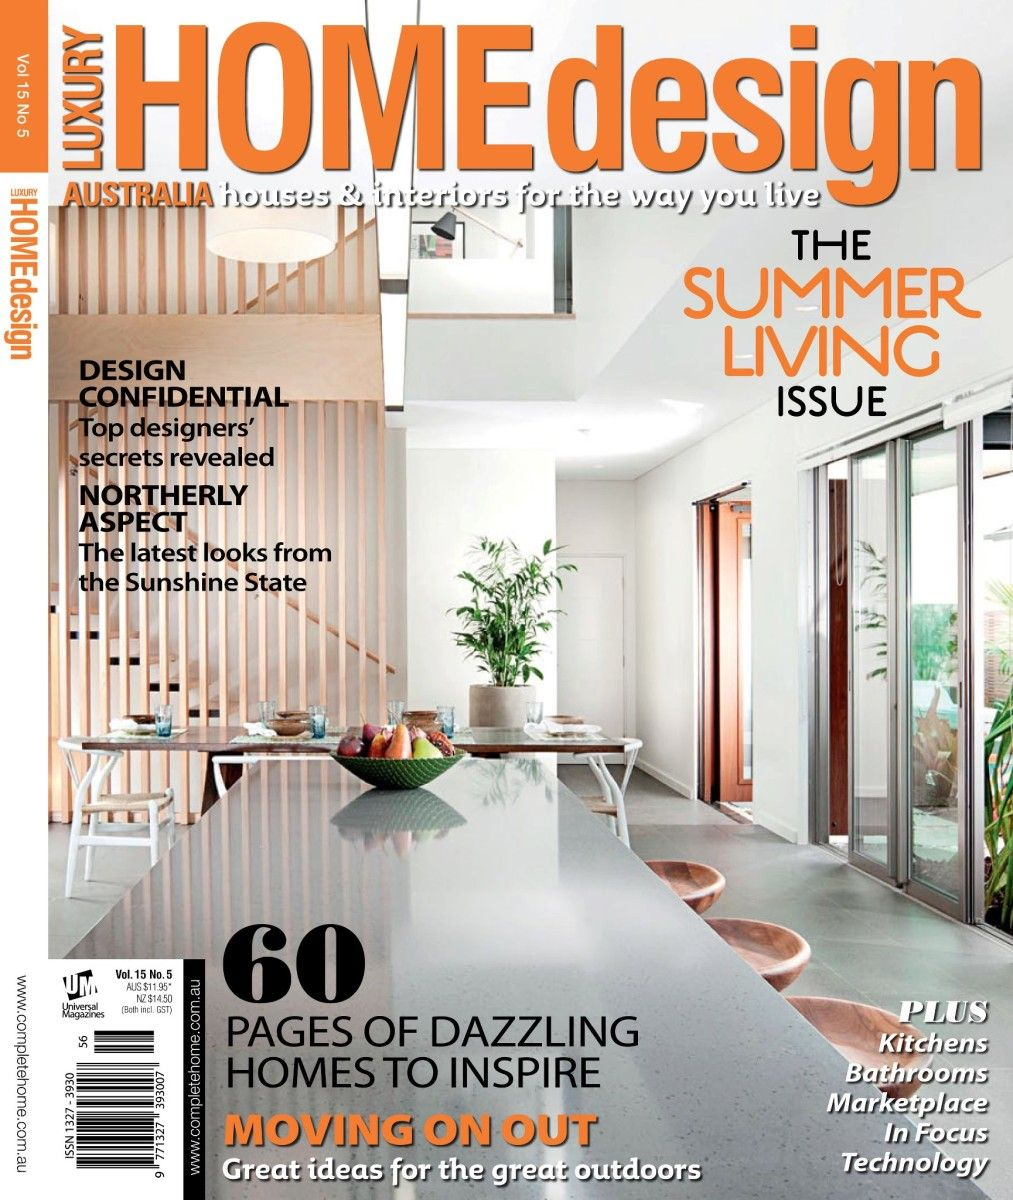 Free Home Design Magazines on free graphic design magazine, free bathroom design magazine, free sewing magazine, free home bar designs, free home logos, free home building magazines, free marketing magazine, free home graphics,